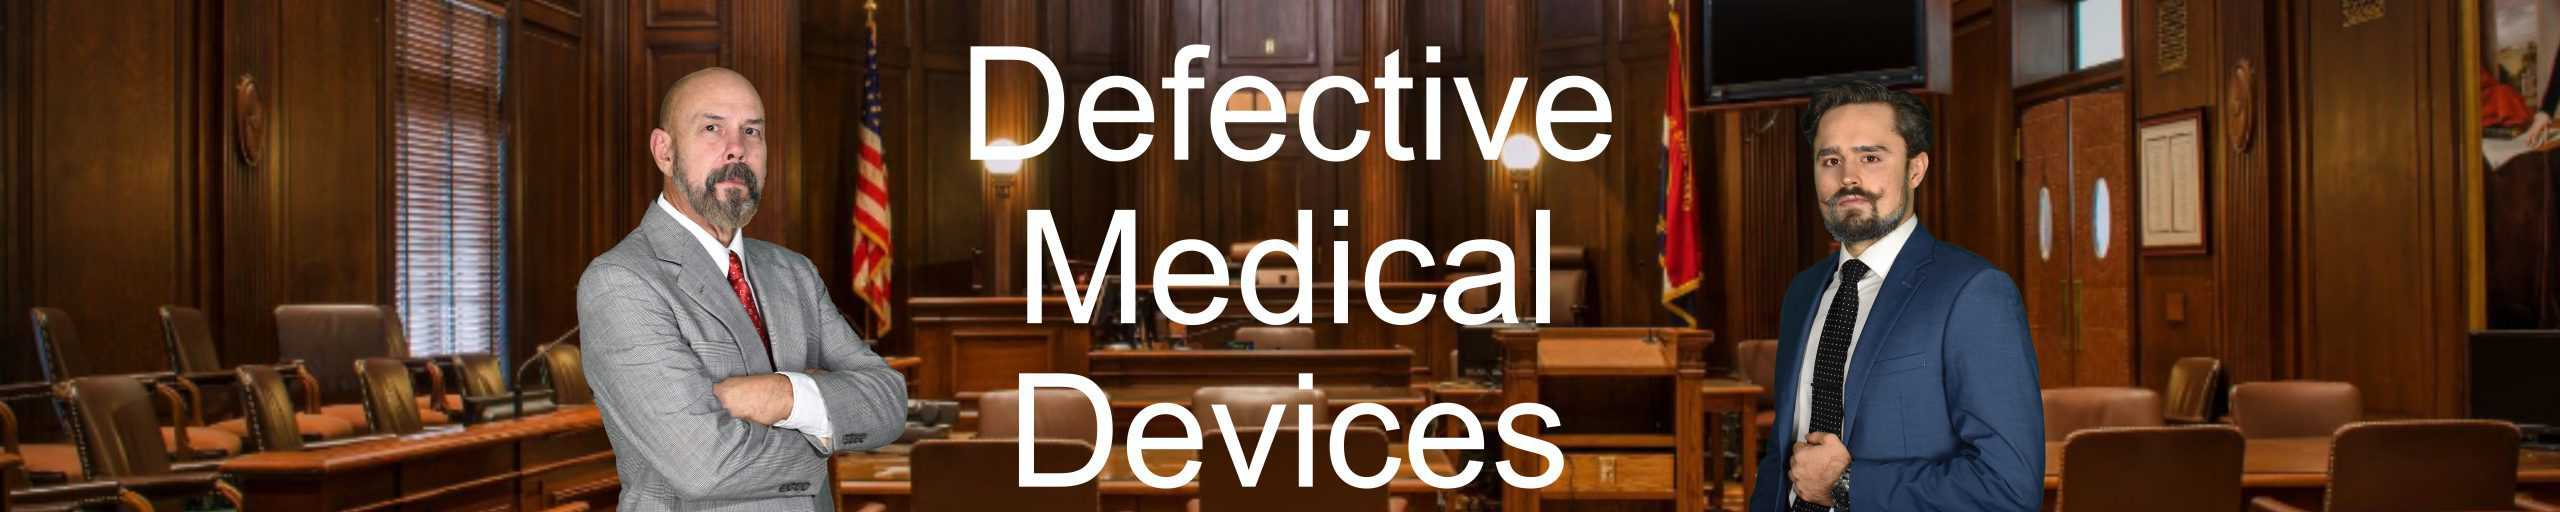 Defective-Medical-Devices-Personal-Injury-Hurt-Lawyer-Attorney